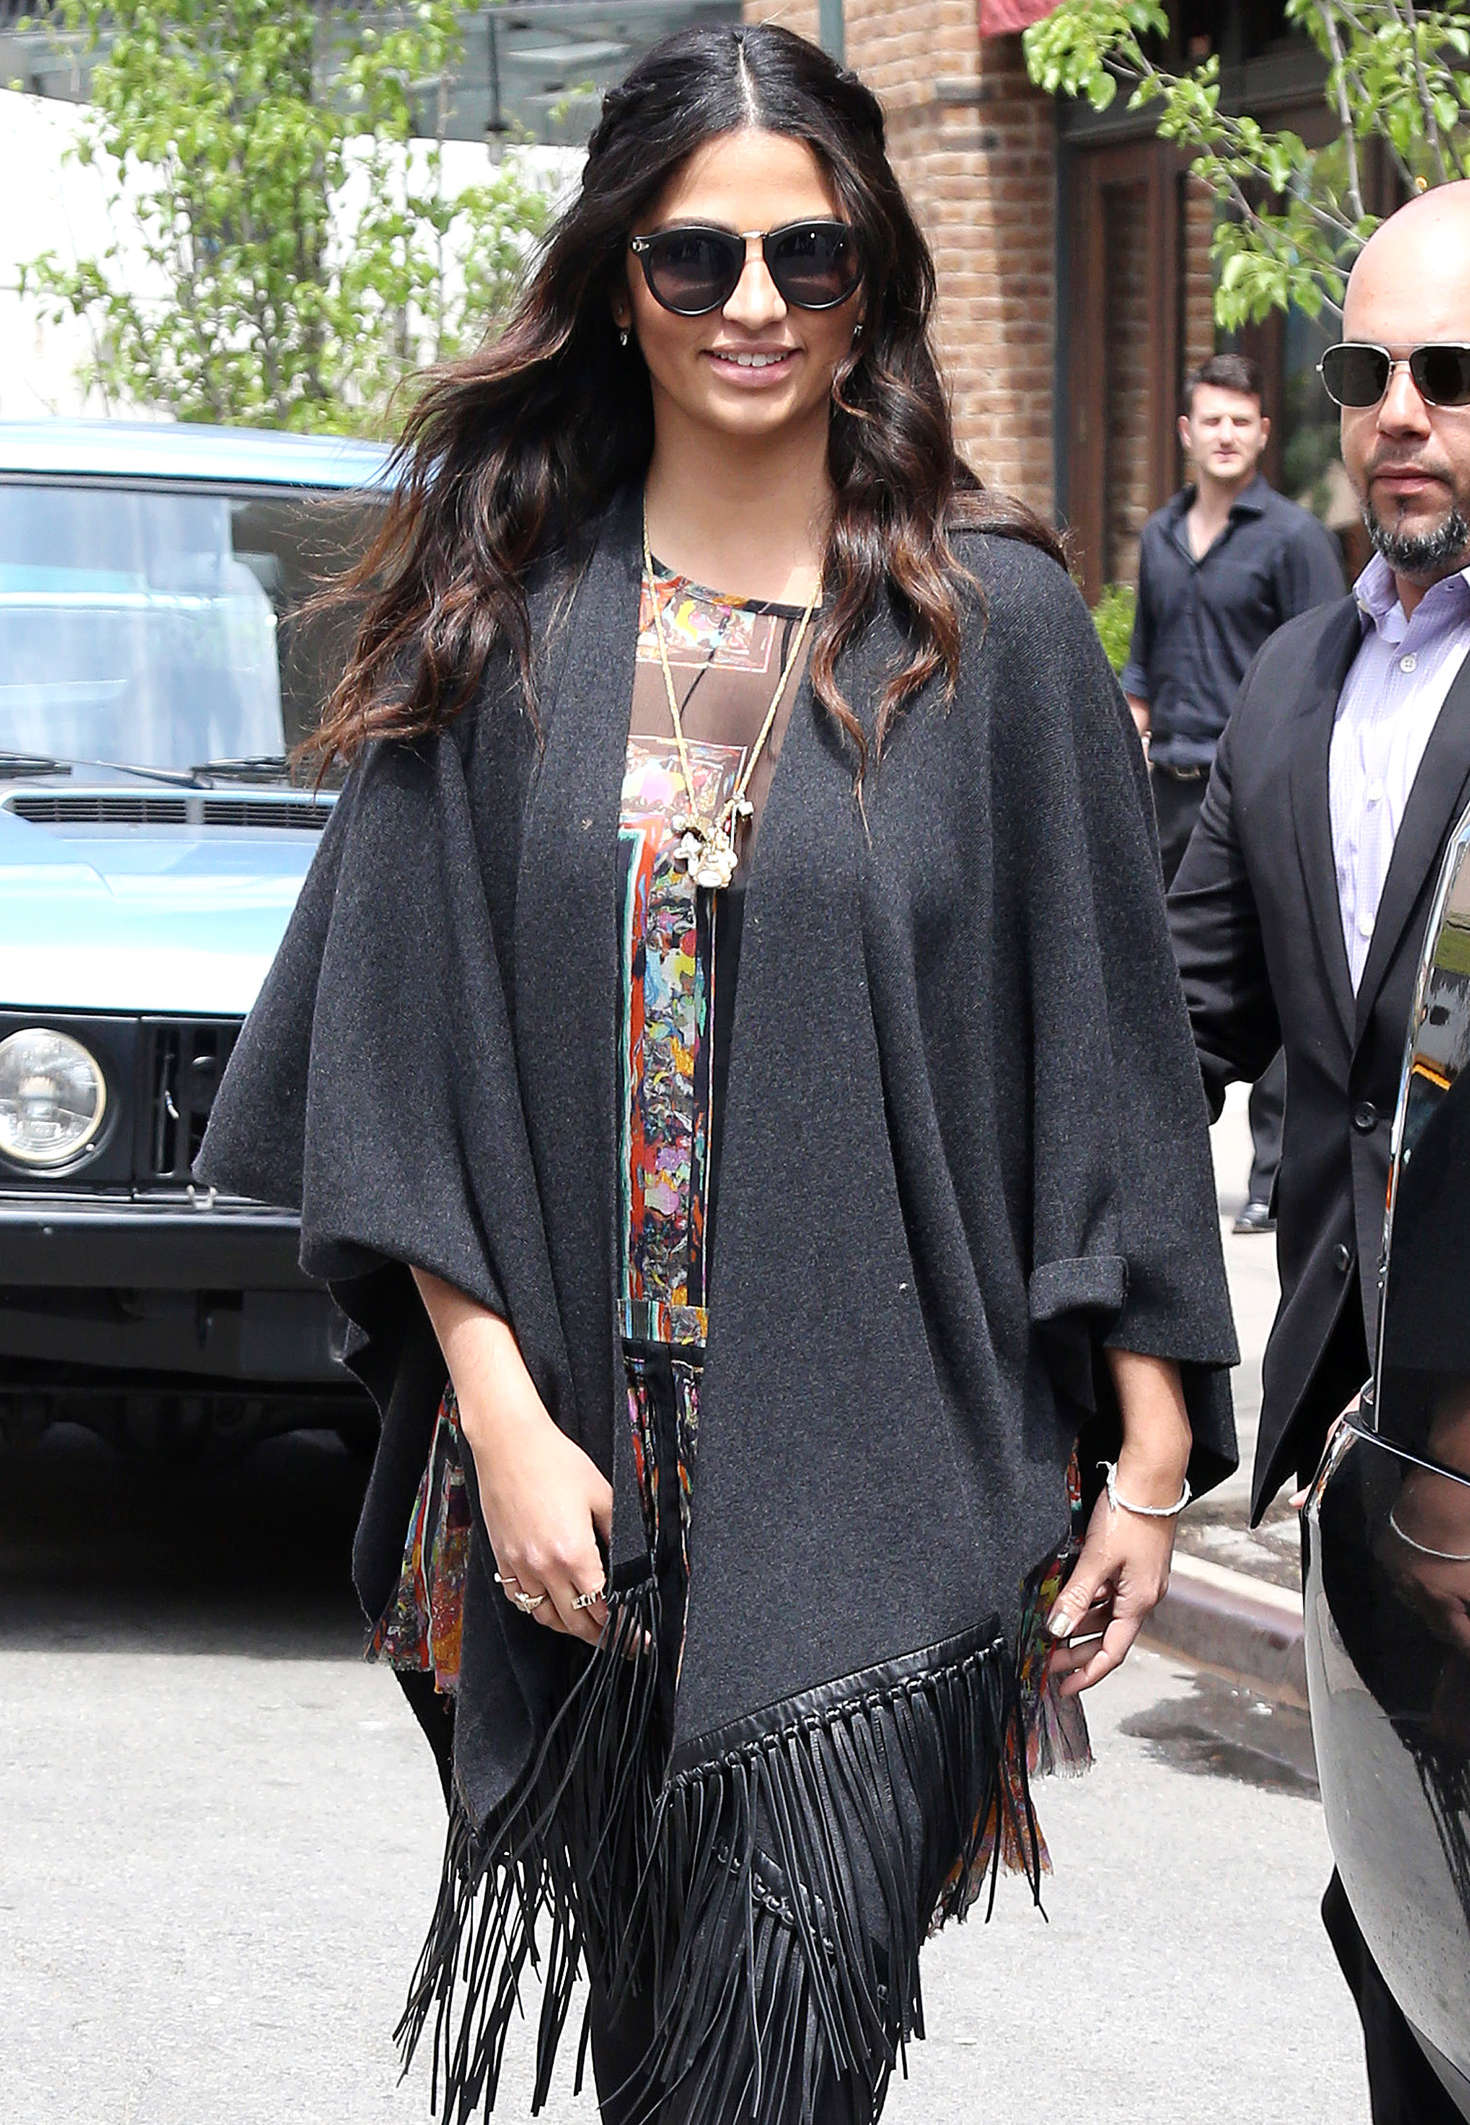 Camila Alves 2016 : Camila Alves out and about in New York City -07